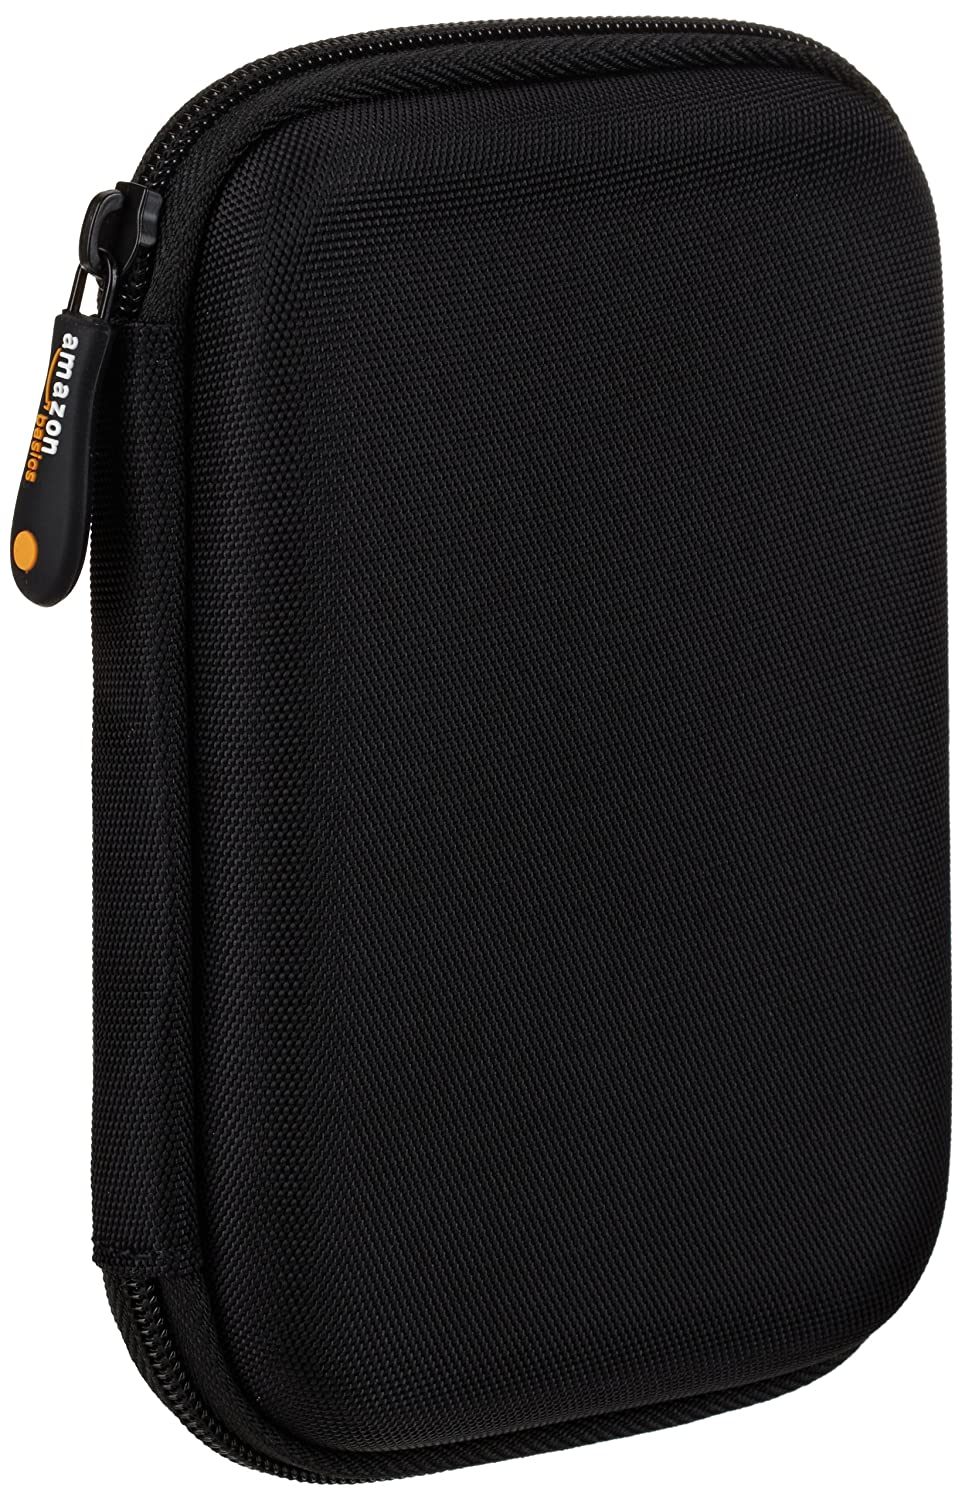 25% off or More Off On AmazonBasics External hard drive case By Amazon | AmazonBasics External Hard Drive Case @ Rs.499